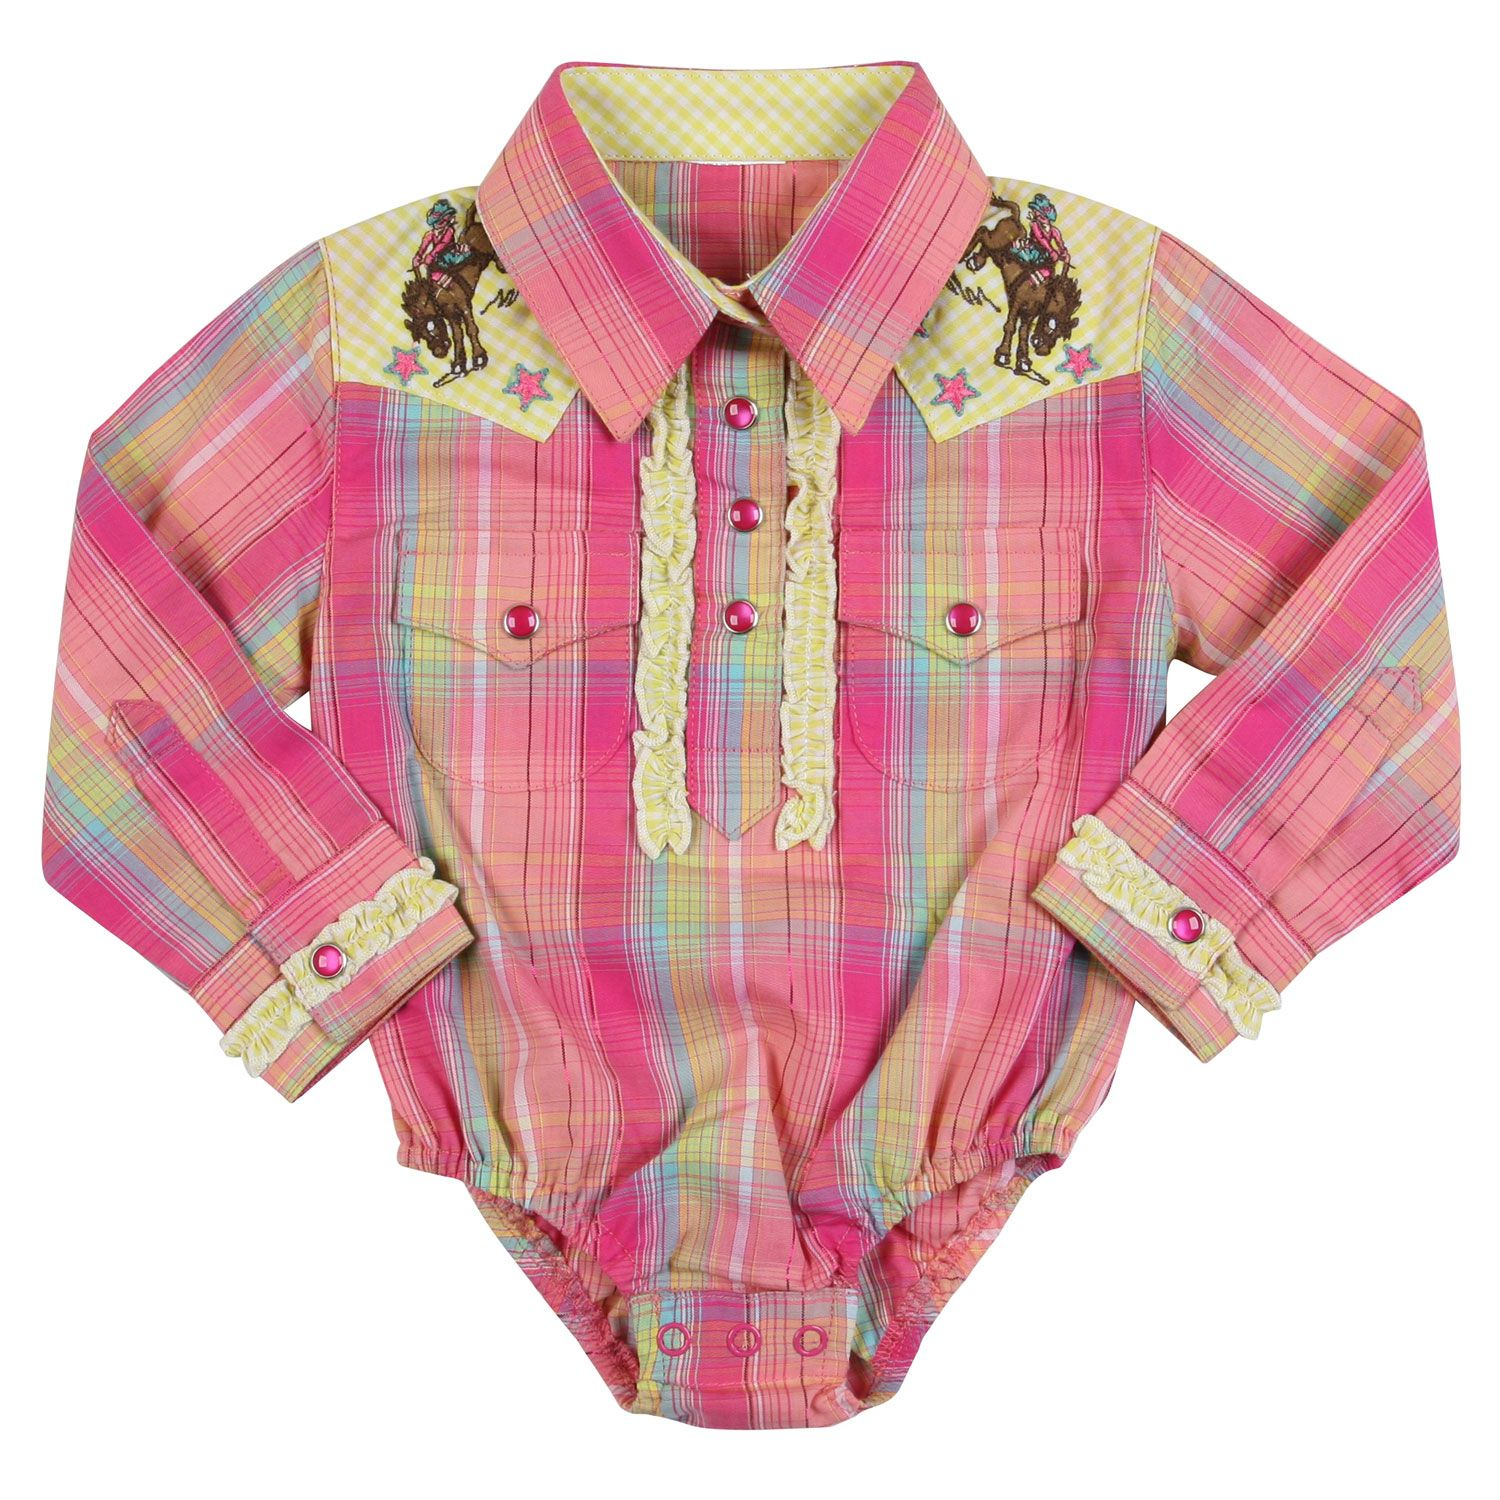 Infant Western Wear at hitseparatingfiletransfer.tk - Dress your baby in quality western wear from your favorite brands such as Wrangler, John Deere & Roper. Shop today!